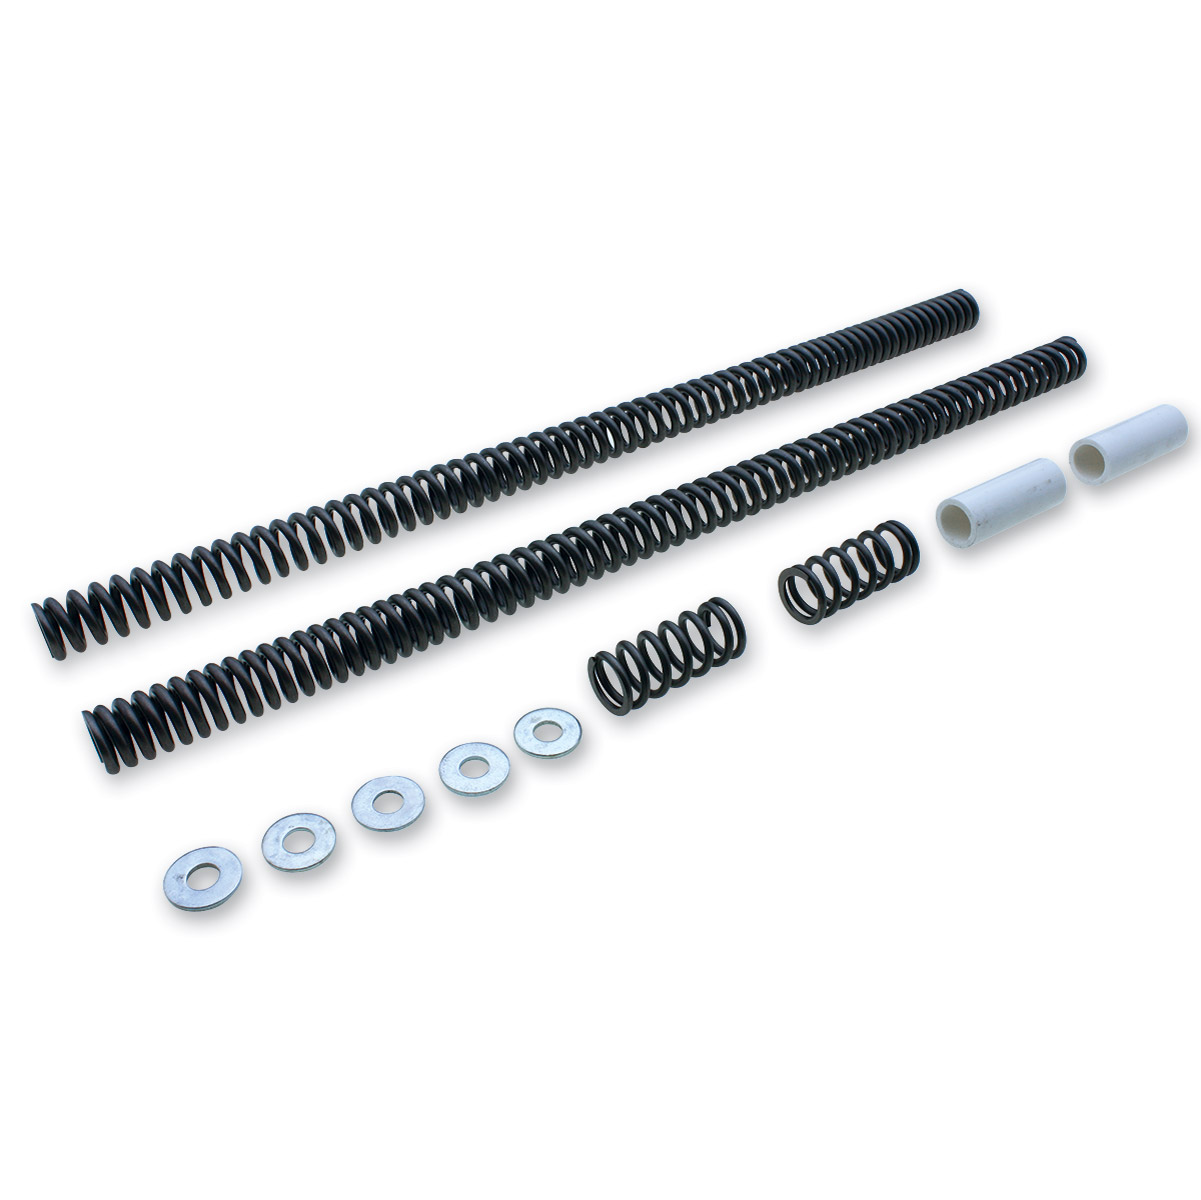 Burly Brand Lowboy Fork Lowering Kits for Models with 39mm Showa Forks